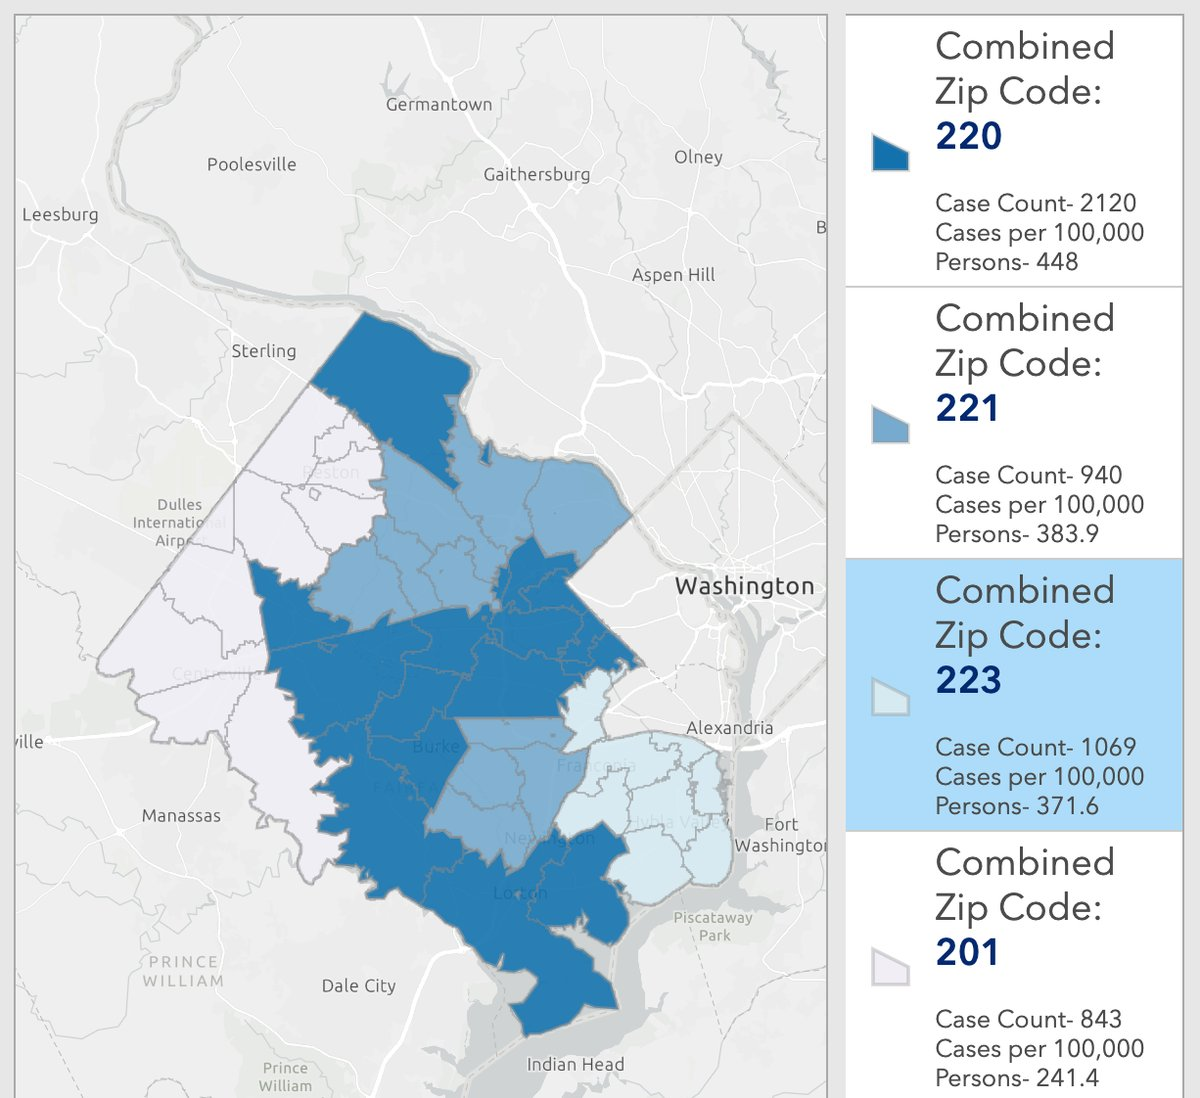 Virginia Dept Of Health Provides Covid 19 Cases By Zip Code